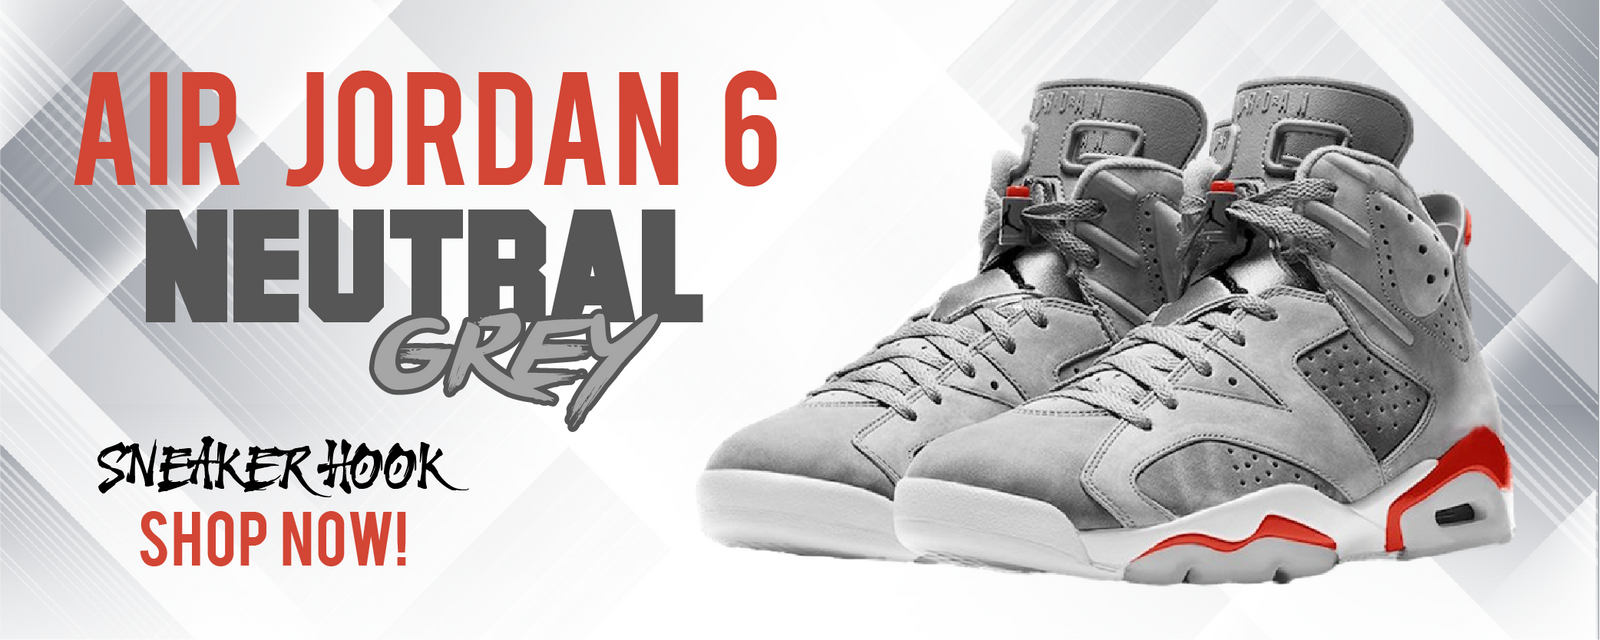 Jordan 6 Neutral Grey Clothing to match Sneakers | Clothing to match Air Jordan 6 Neutral Grey Shoes